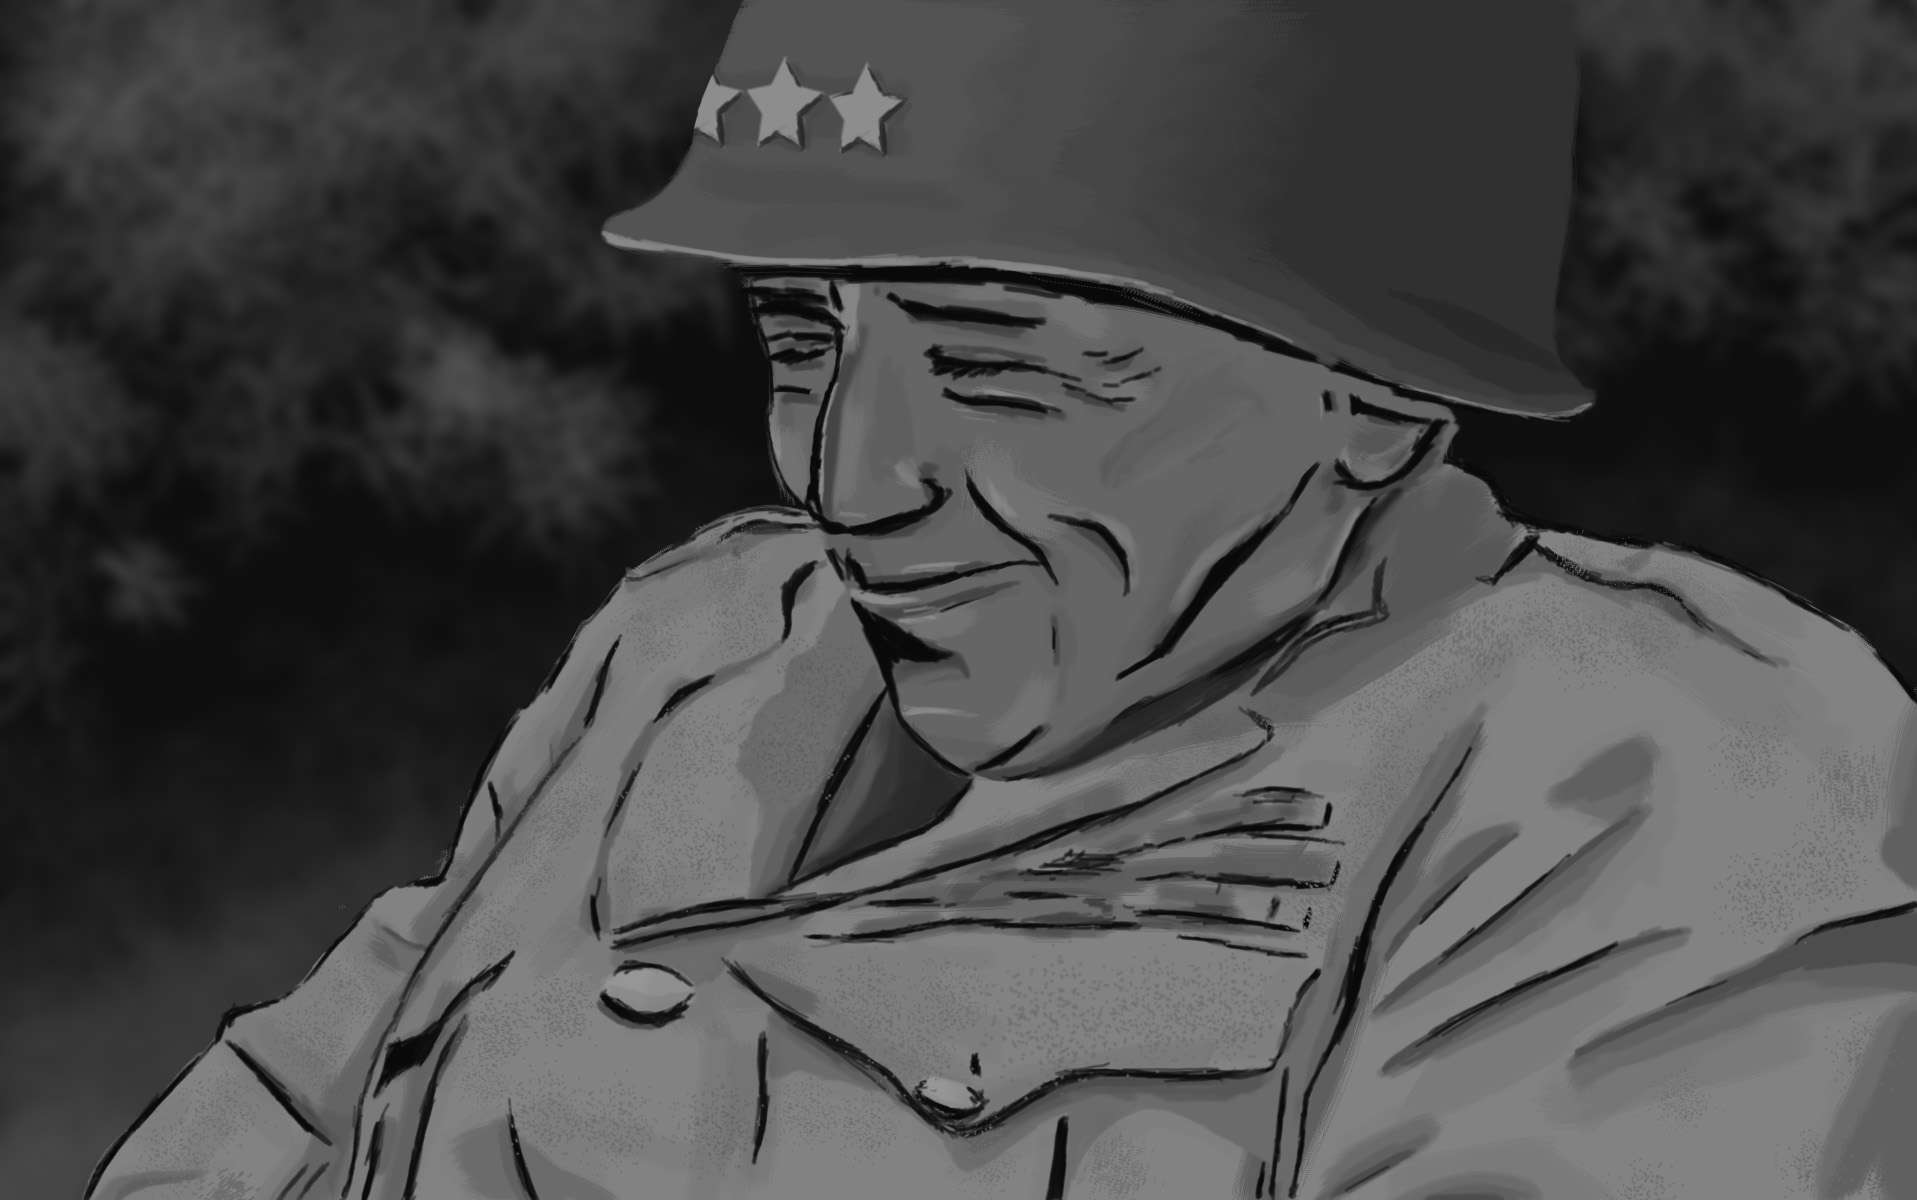 Patton Old Blood and Guts